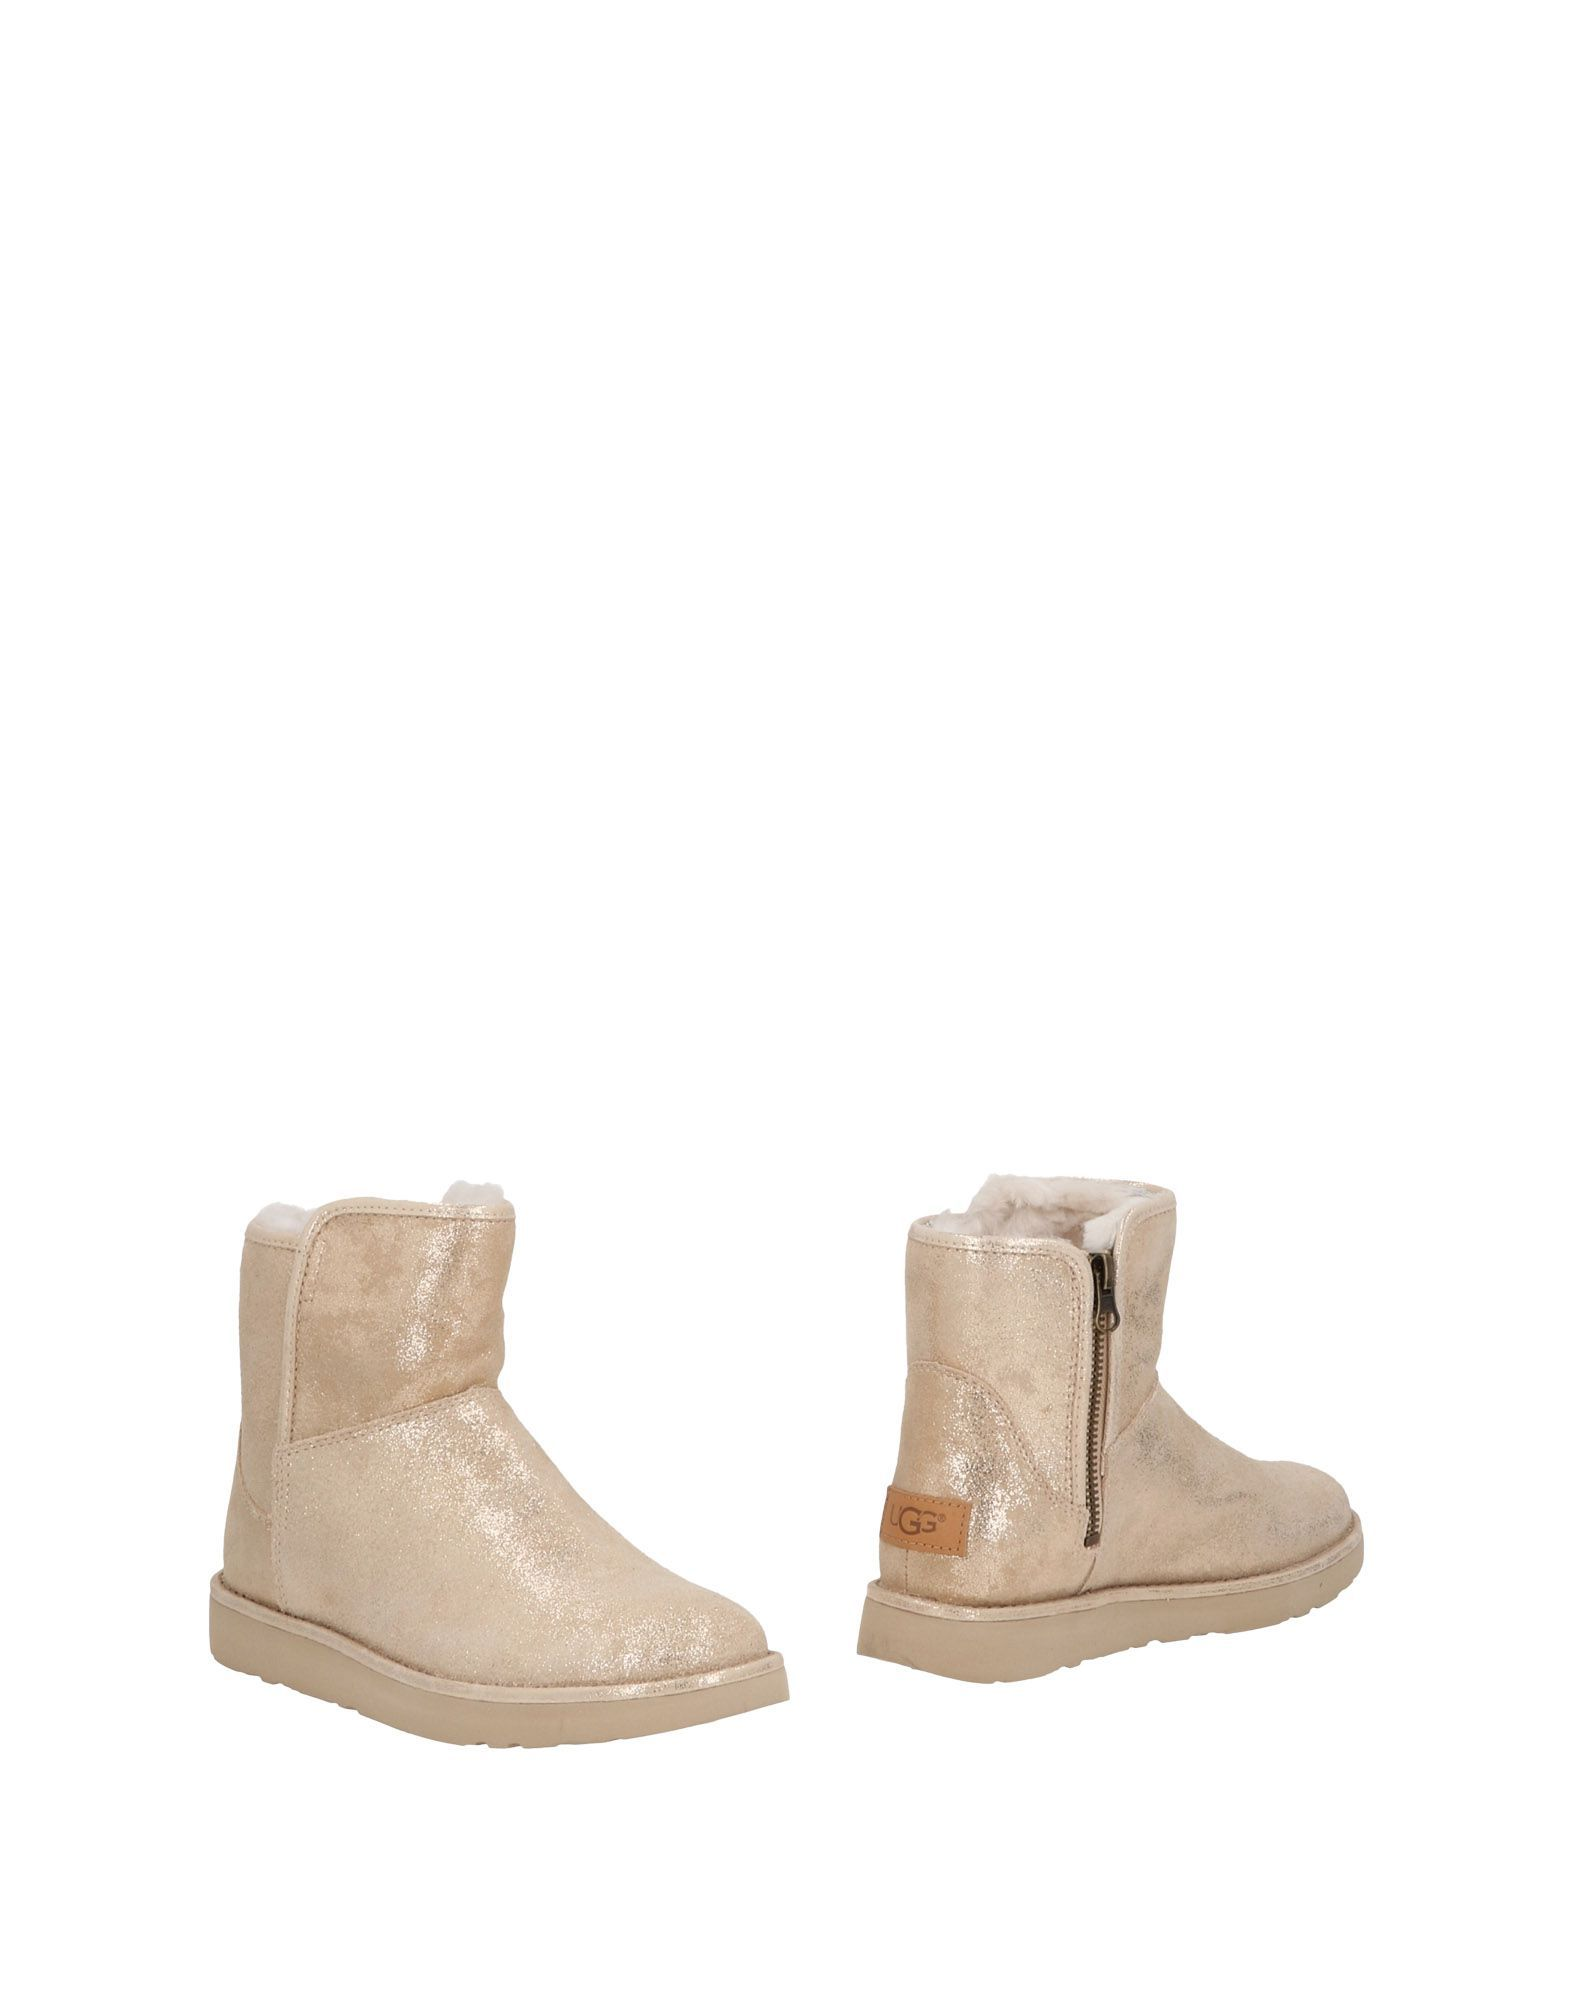 Ugg Australia Beige Leather Ankle Boots